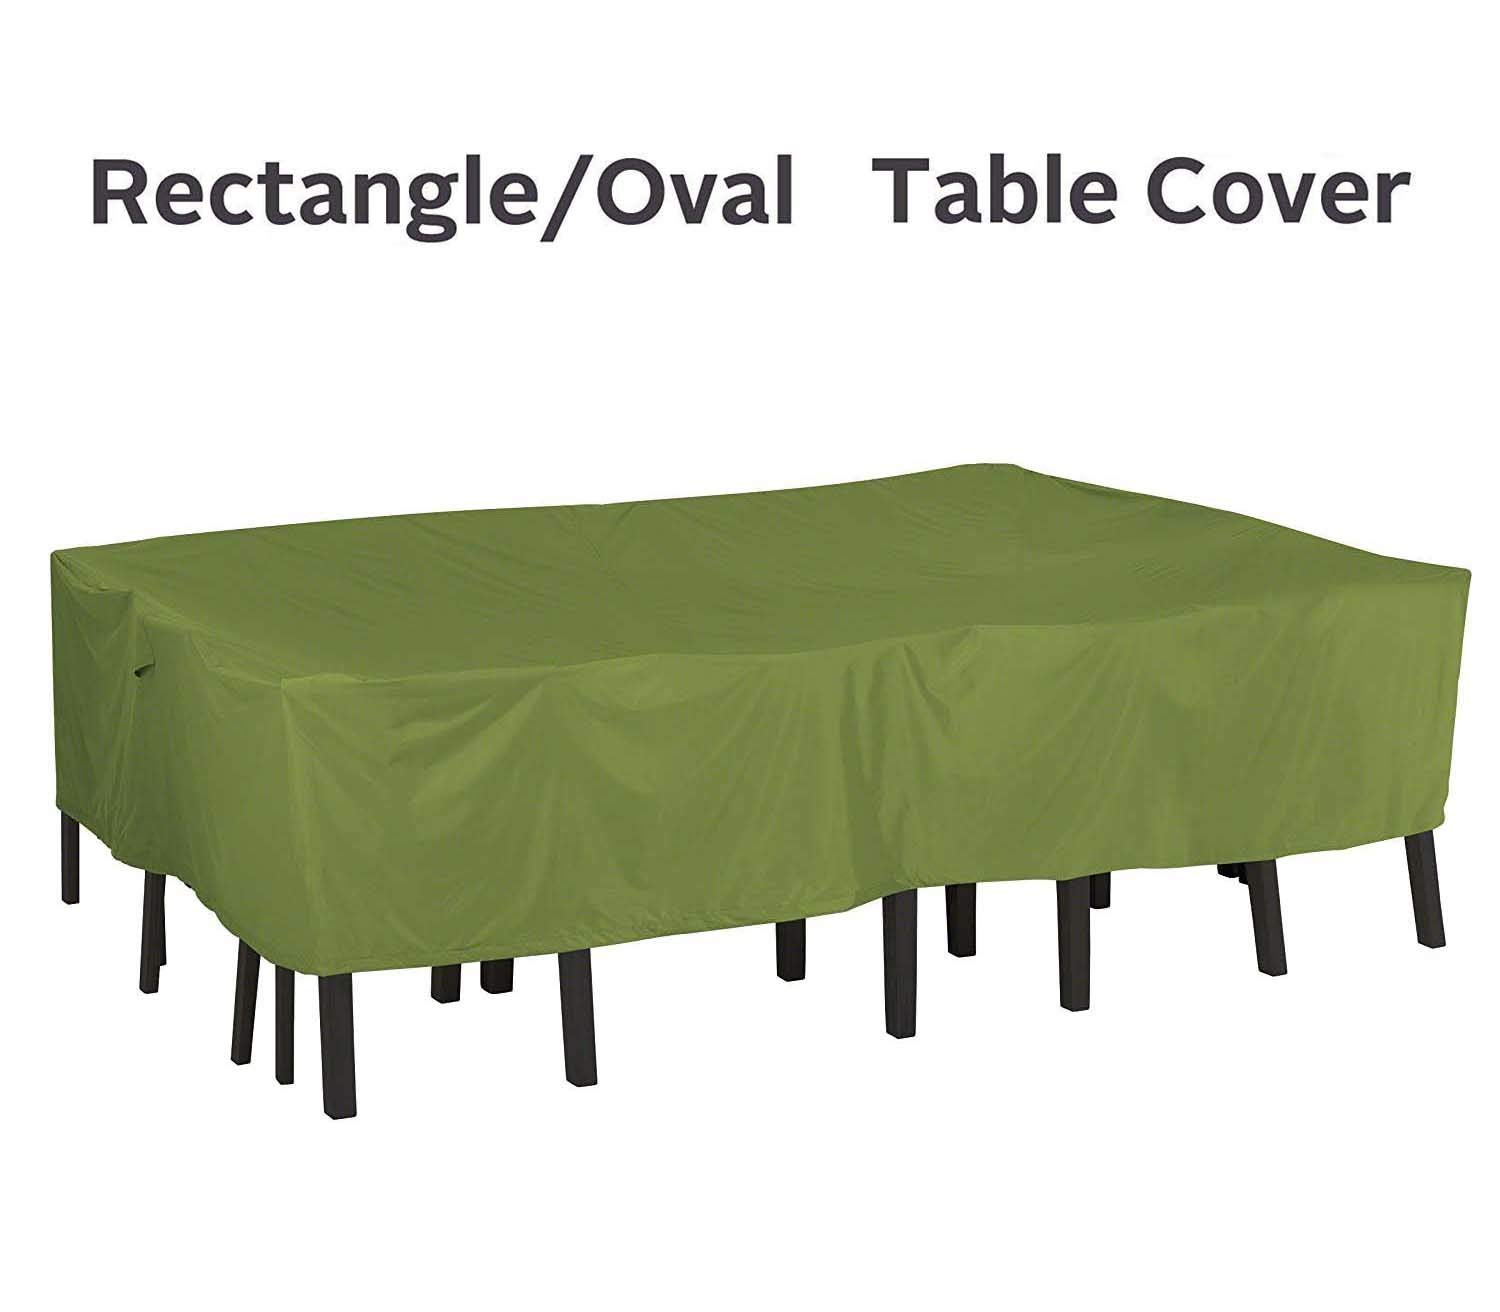 QueenA Rectangular/Oval Patio Table and Chair Set Cover,Outdoor Durable and Water Resistant Furniture Covers with Padded Handles & Durable Hem Cord (88×58×23inch)